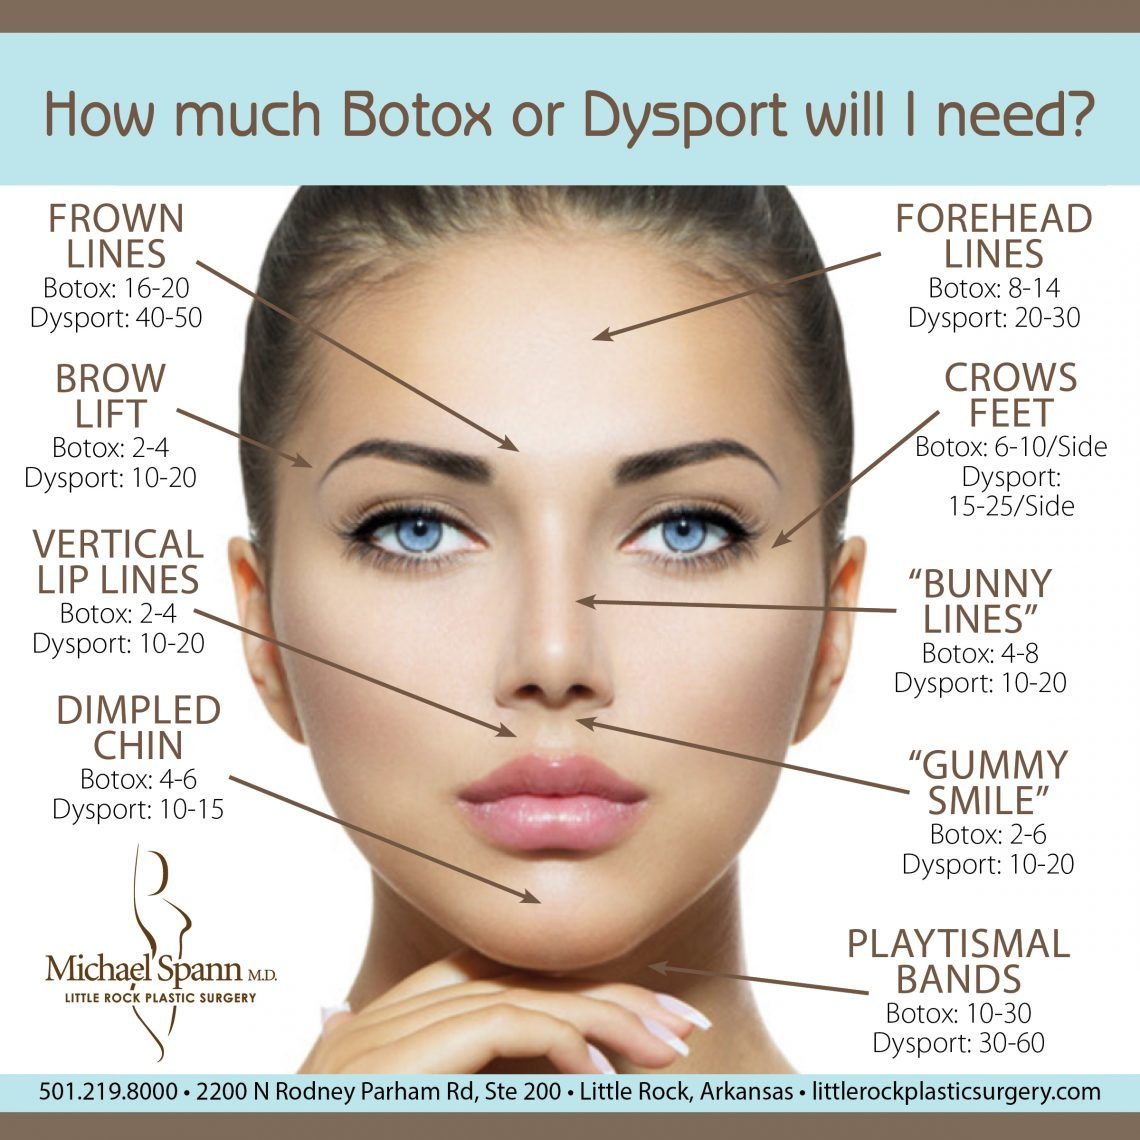 Why Don't I Love My Botox/Dysport Results? Botox face